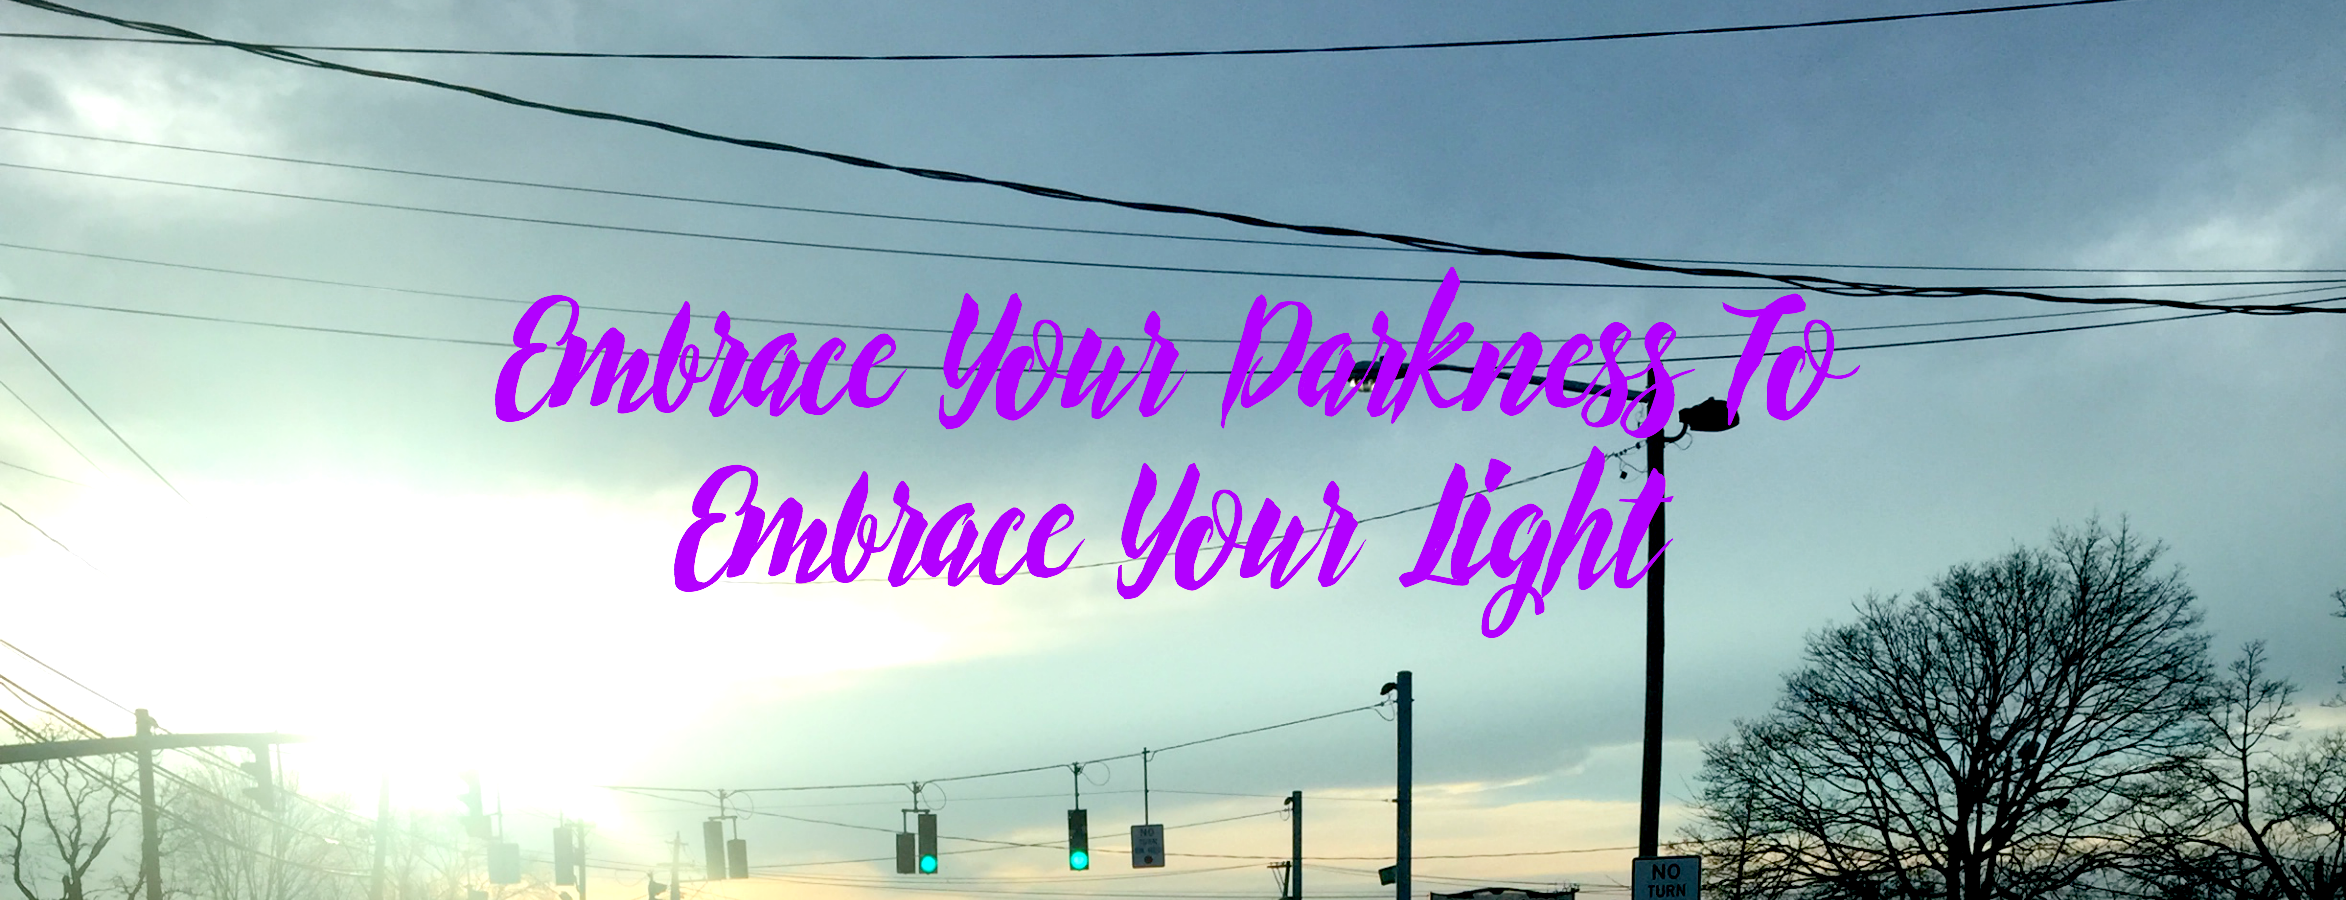 Embracing Your Darkness to Embrace Your Light